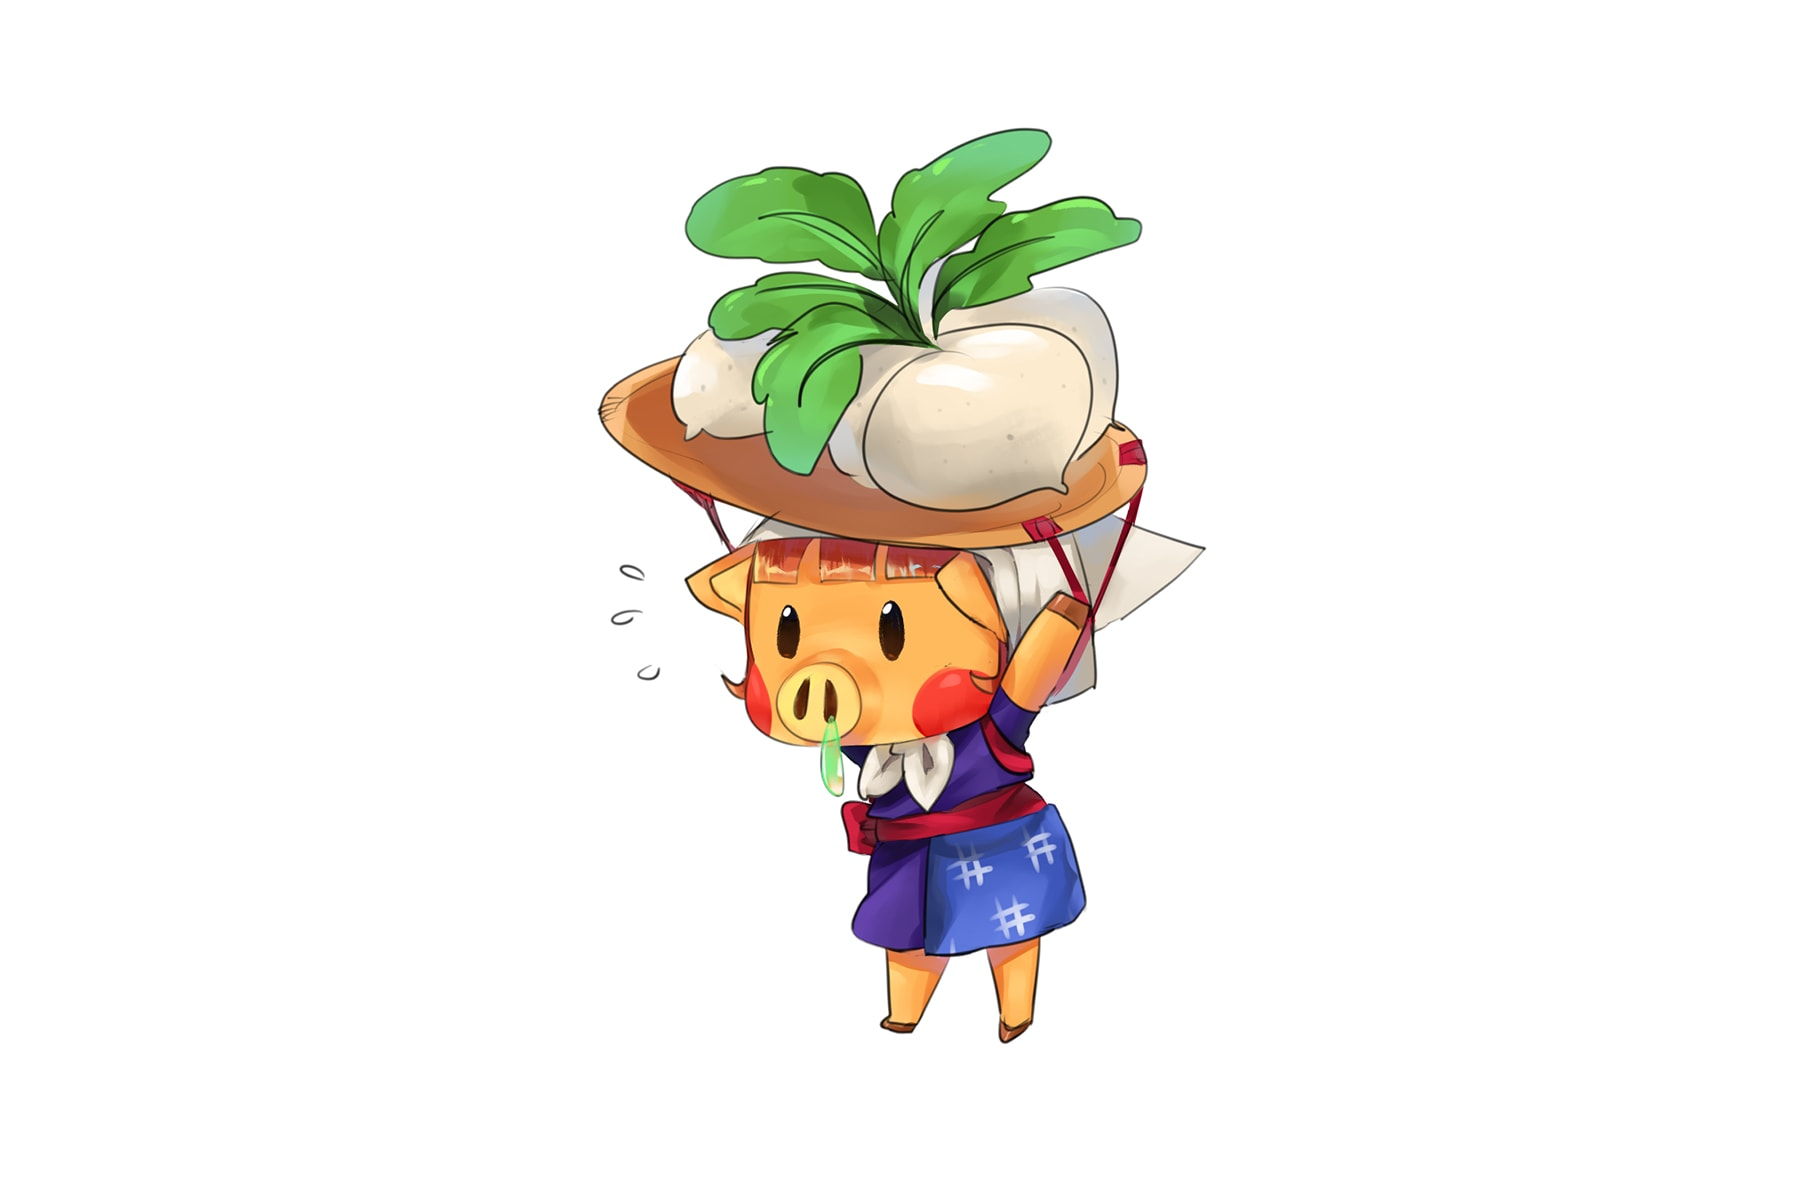 daisy mae animal crossing new horizons